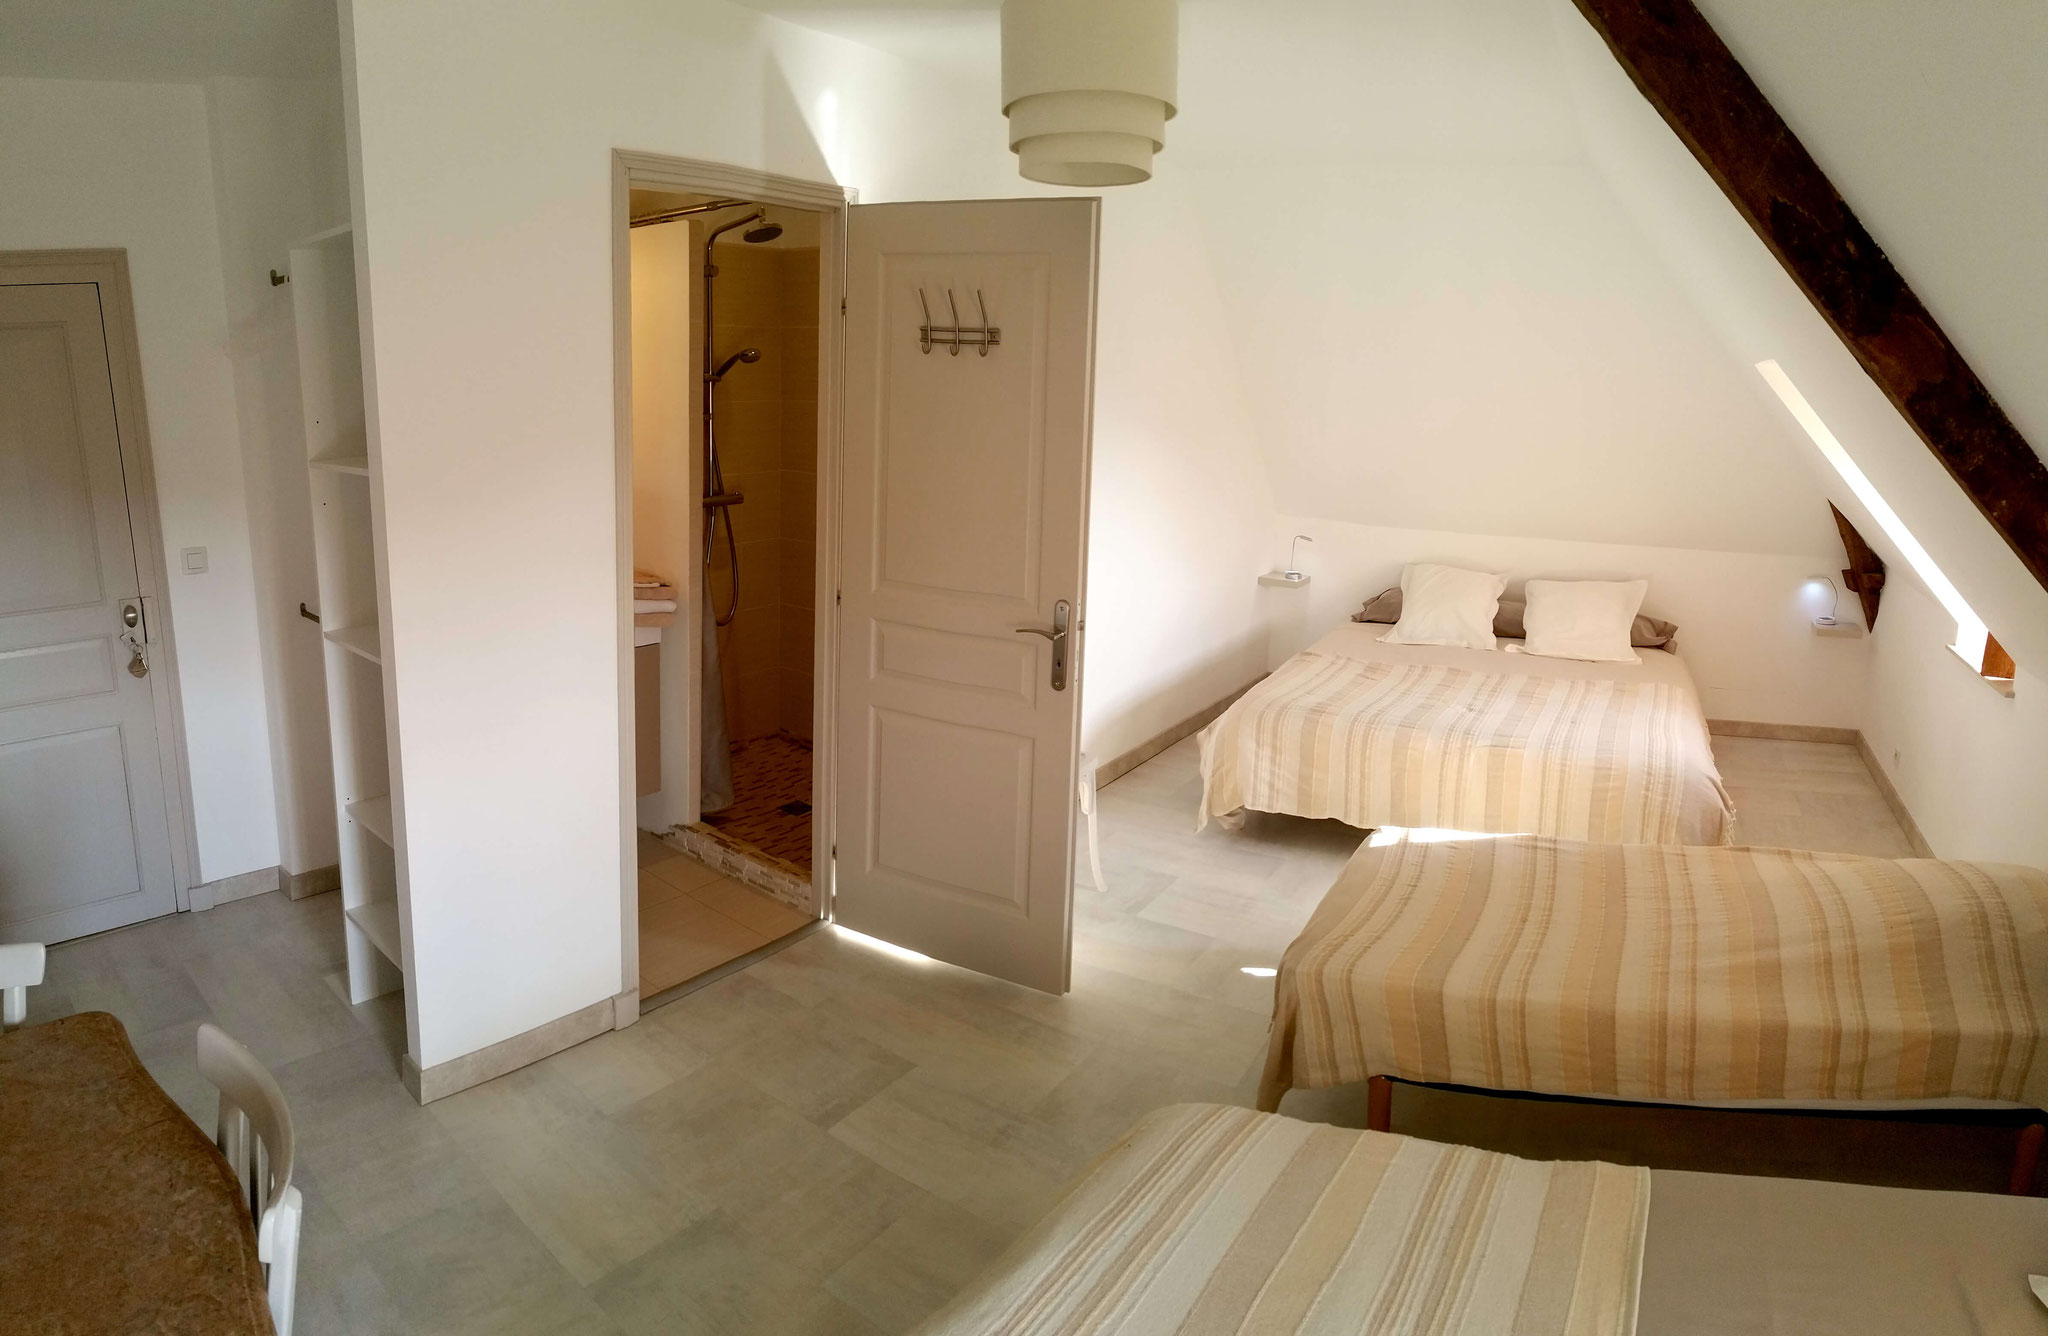 The Causse bedroom from 2 to 4 people